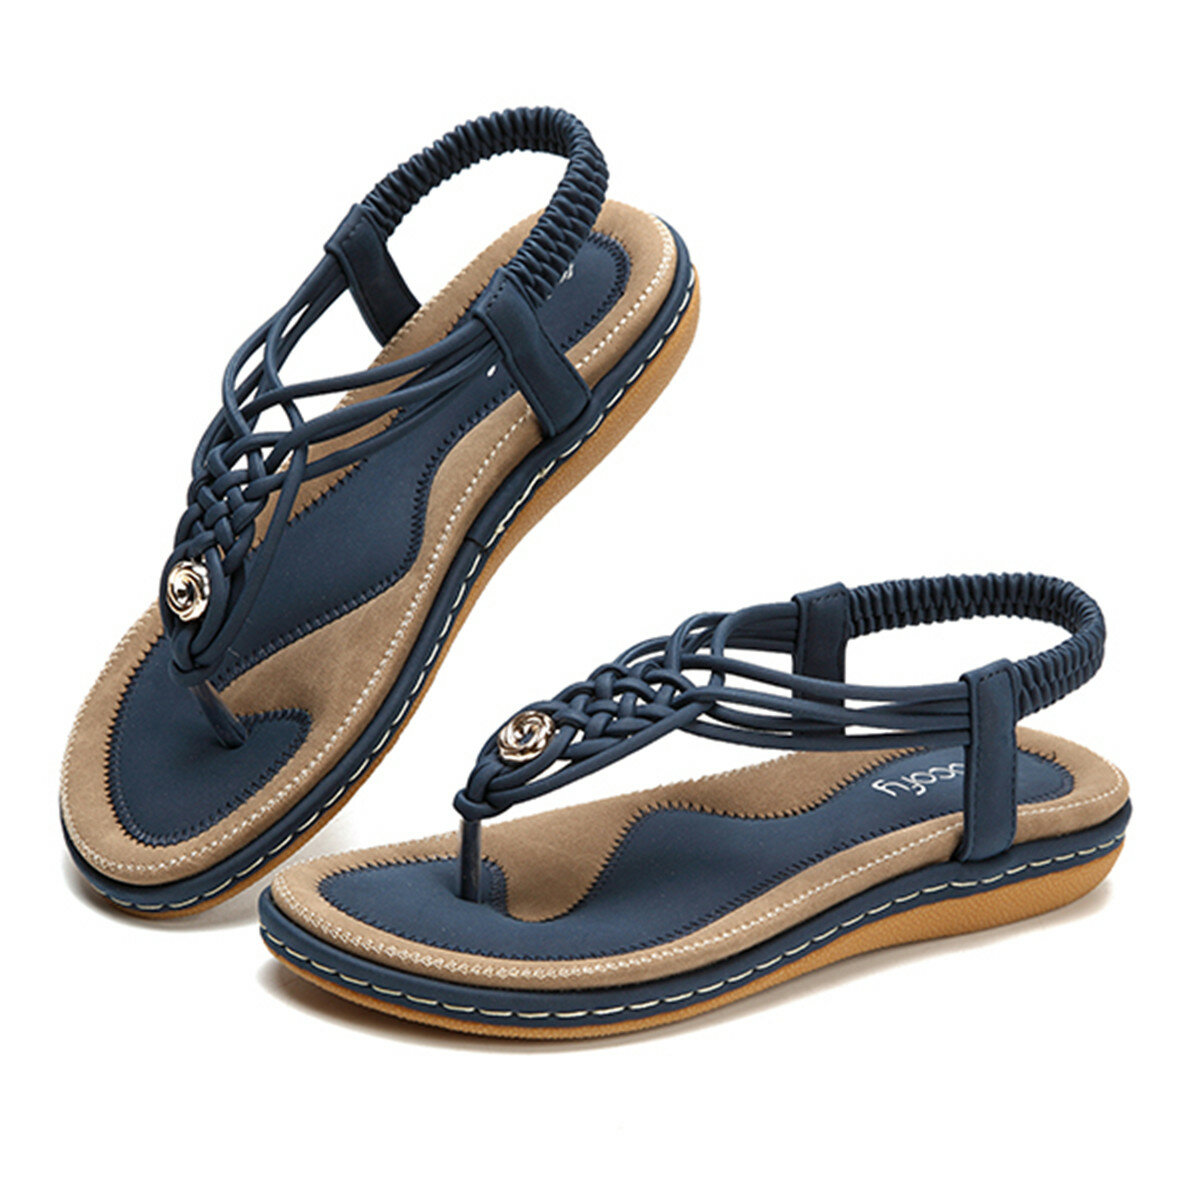 c4d019d91ab3 SOCOFY US Size 5-13 Women Shoes Knitted Casual Soft Sole Outdoor Beach  Sandals COD